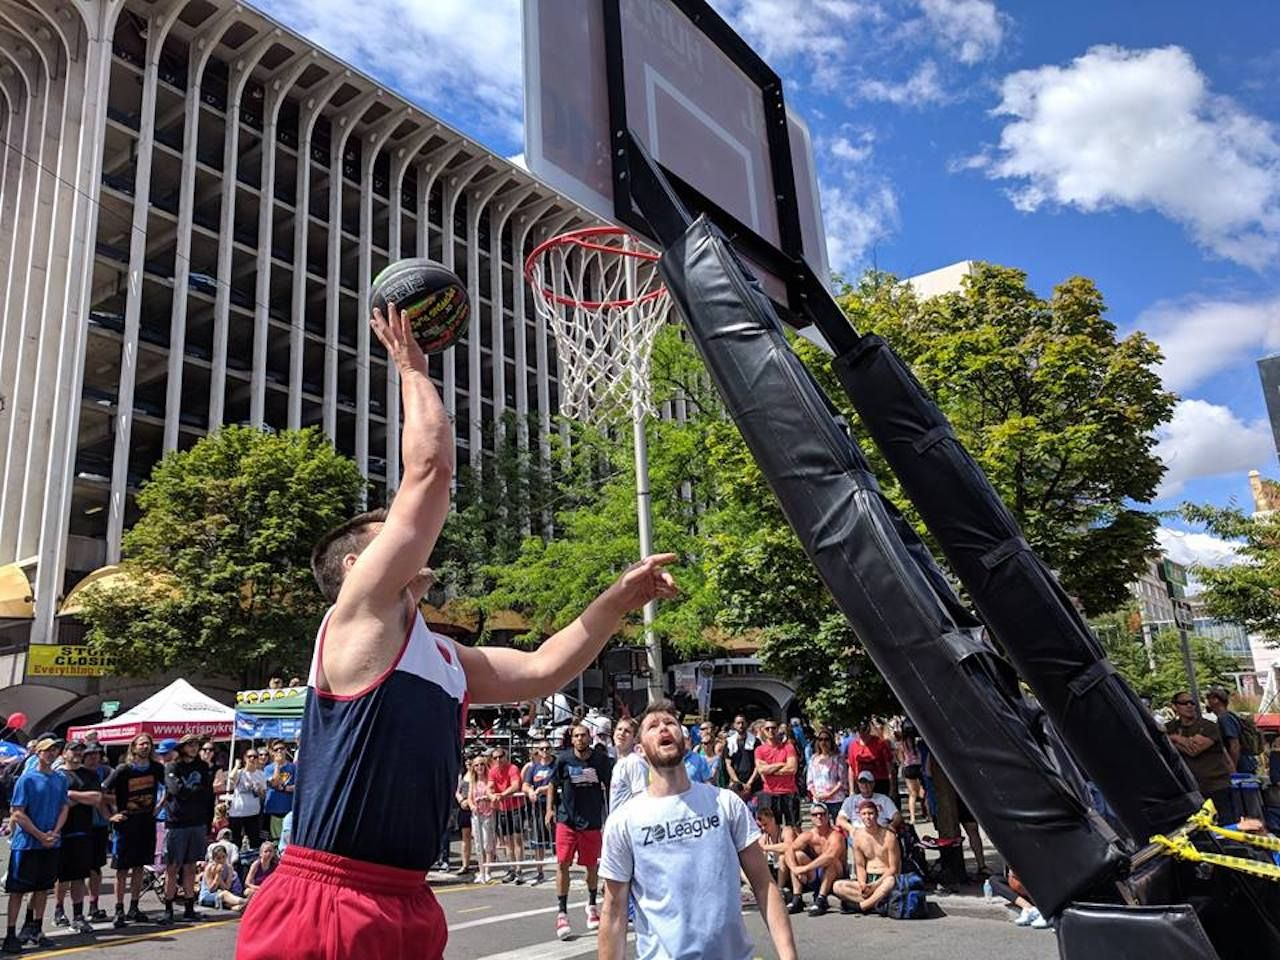 Spokane Hoopfest